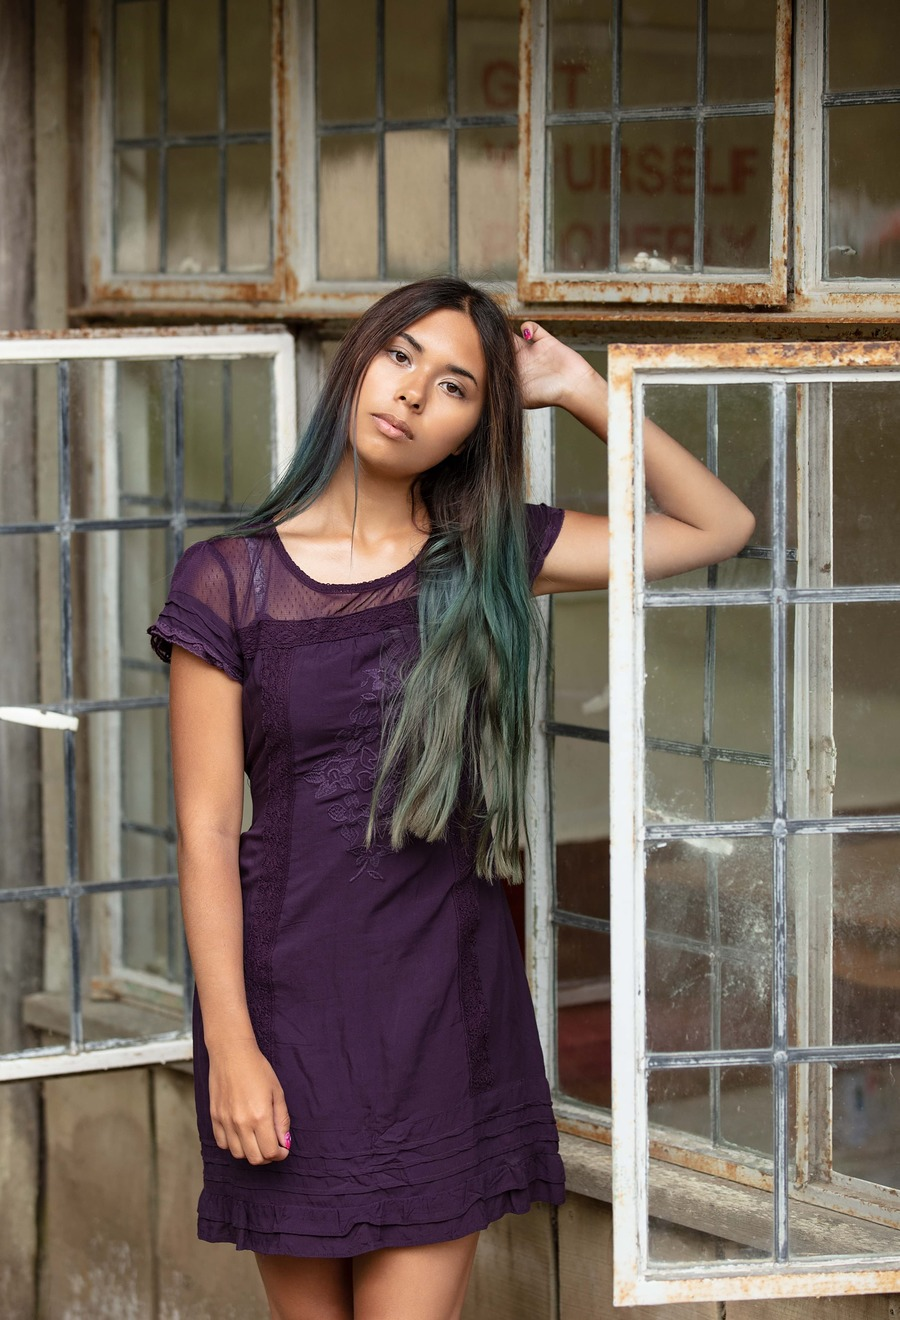 Rusted windows / Photography by Gus Gregory, Model Jaime-lee Burke / Uploaded 24th December 2018 @ 03:37 PM